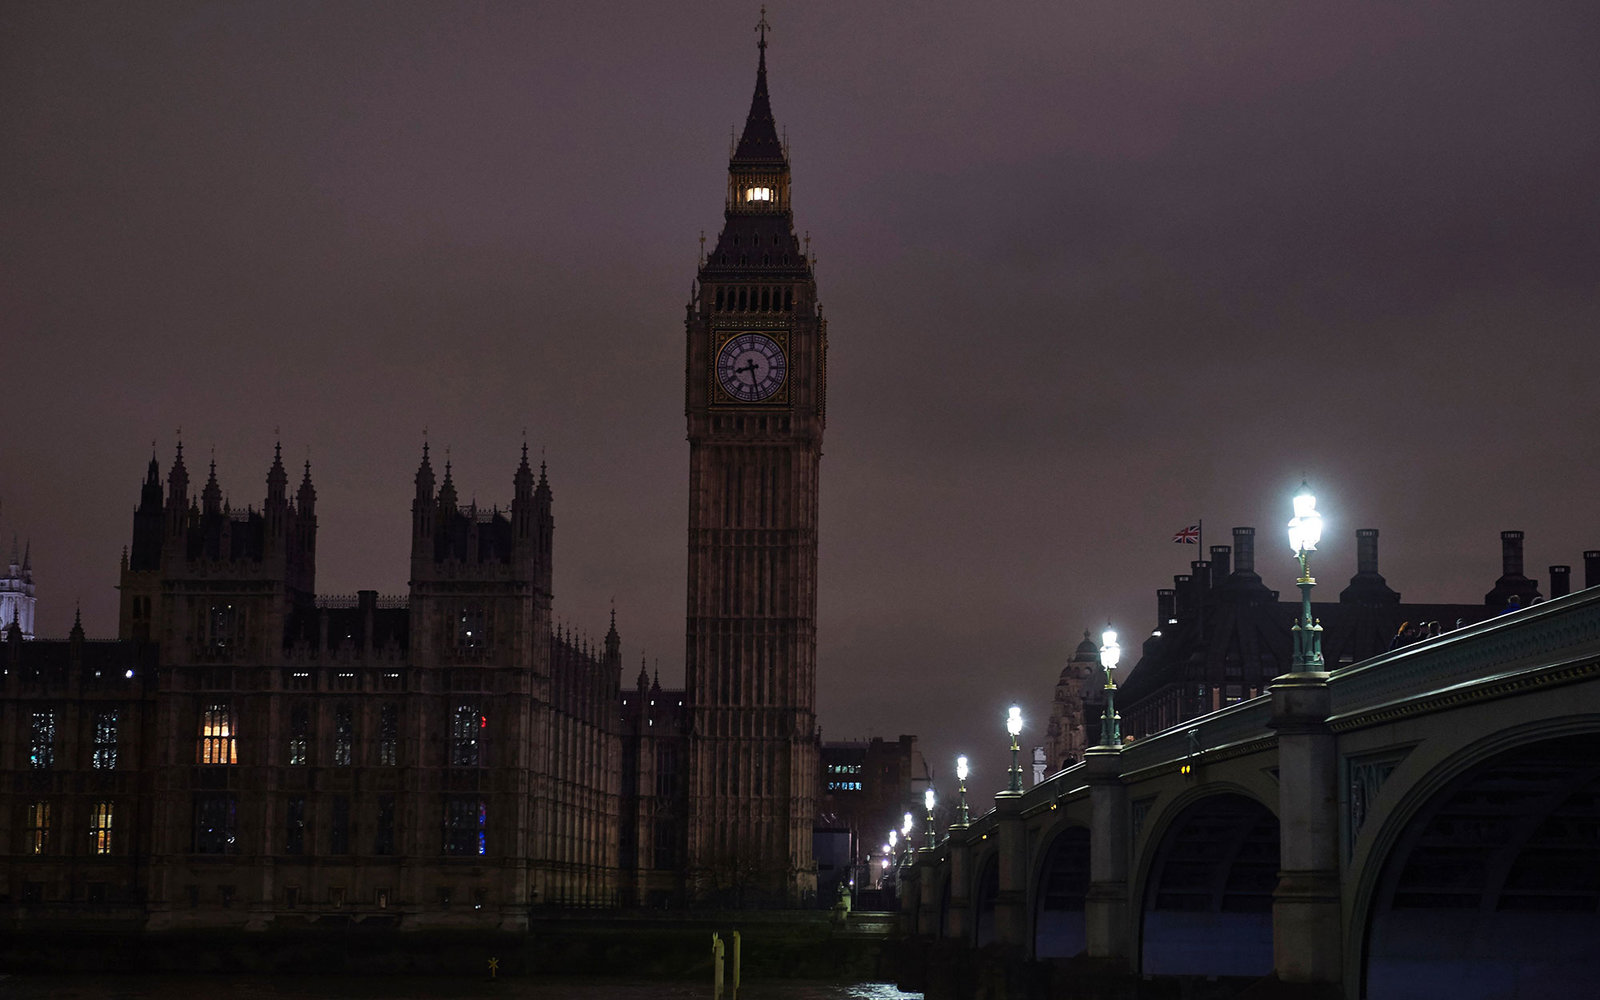 A picture taken on March 19, 2016, in central London, shows Britain's Houses of Parliament after being submerged into darkness for the Earth Hour environmental campaign.